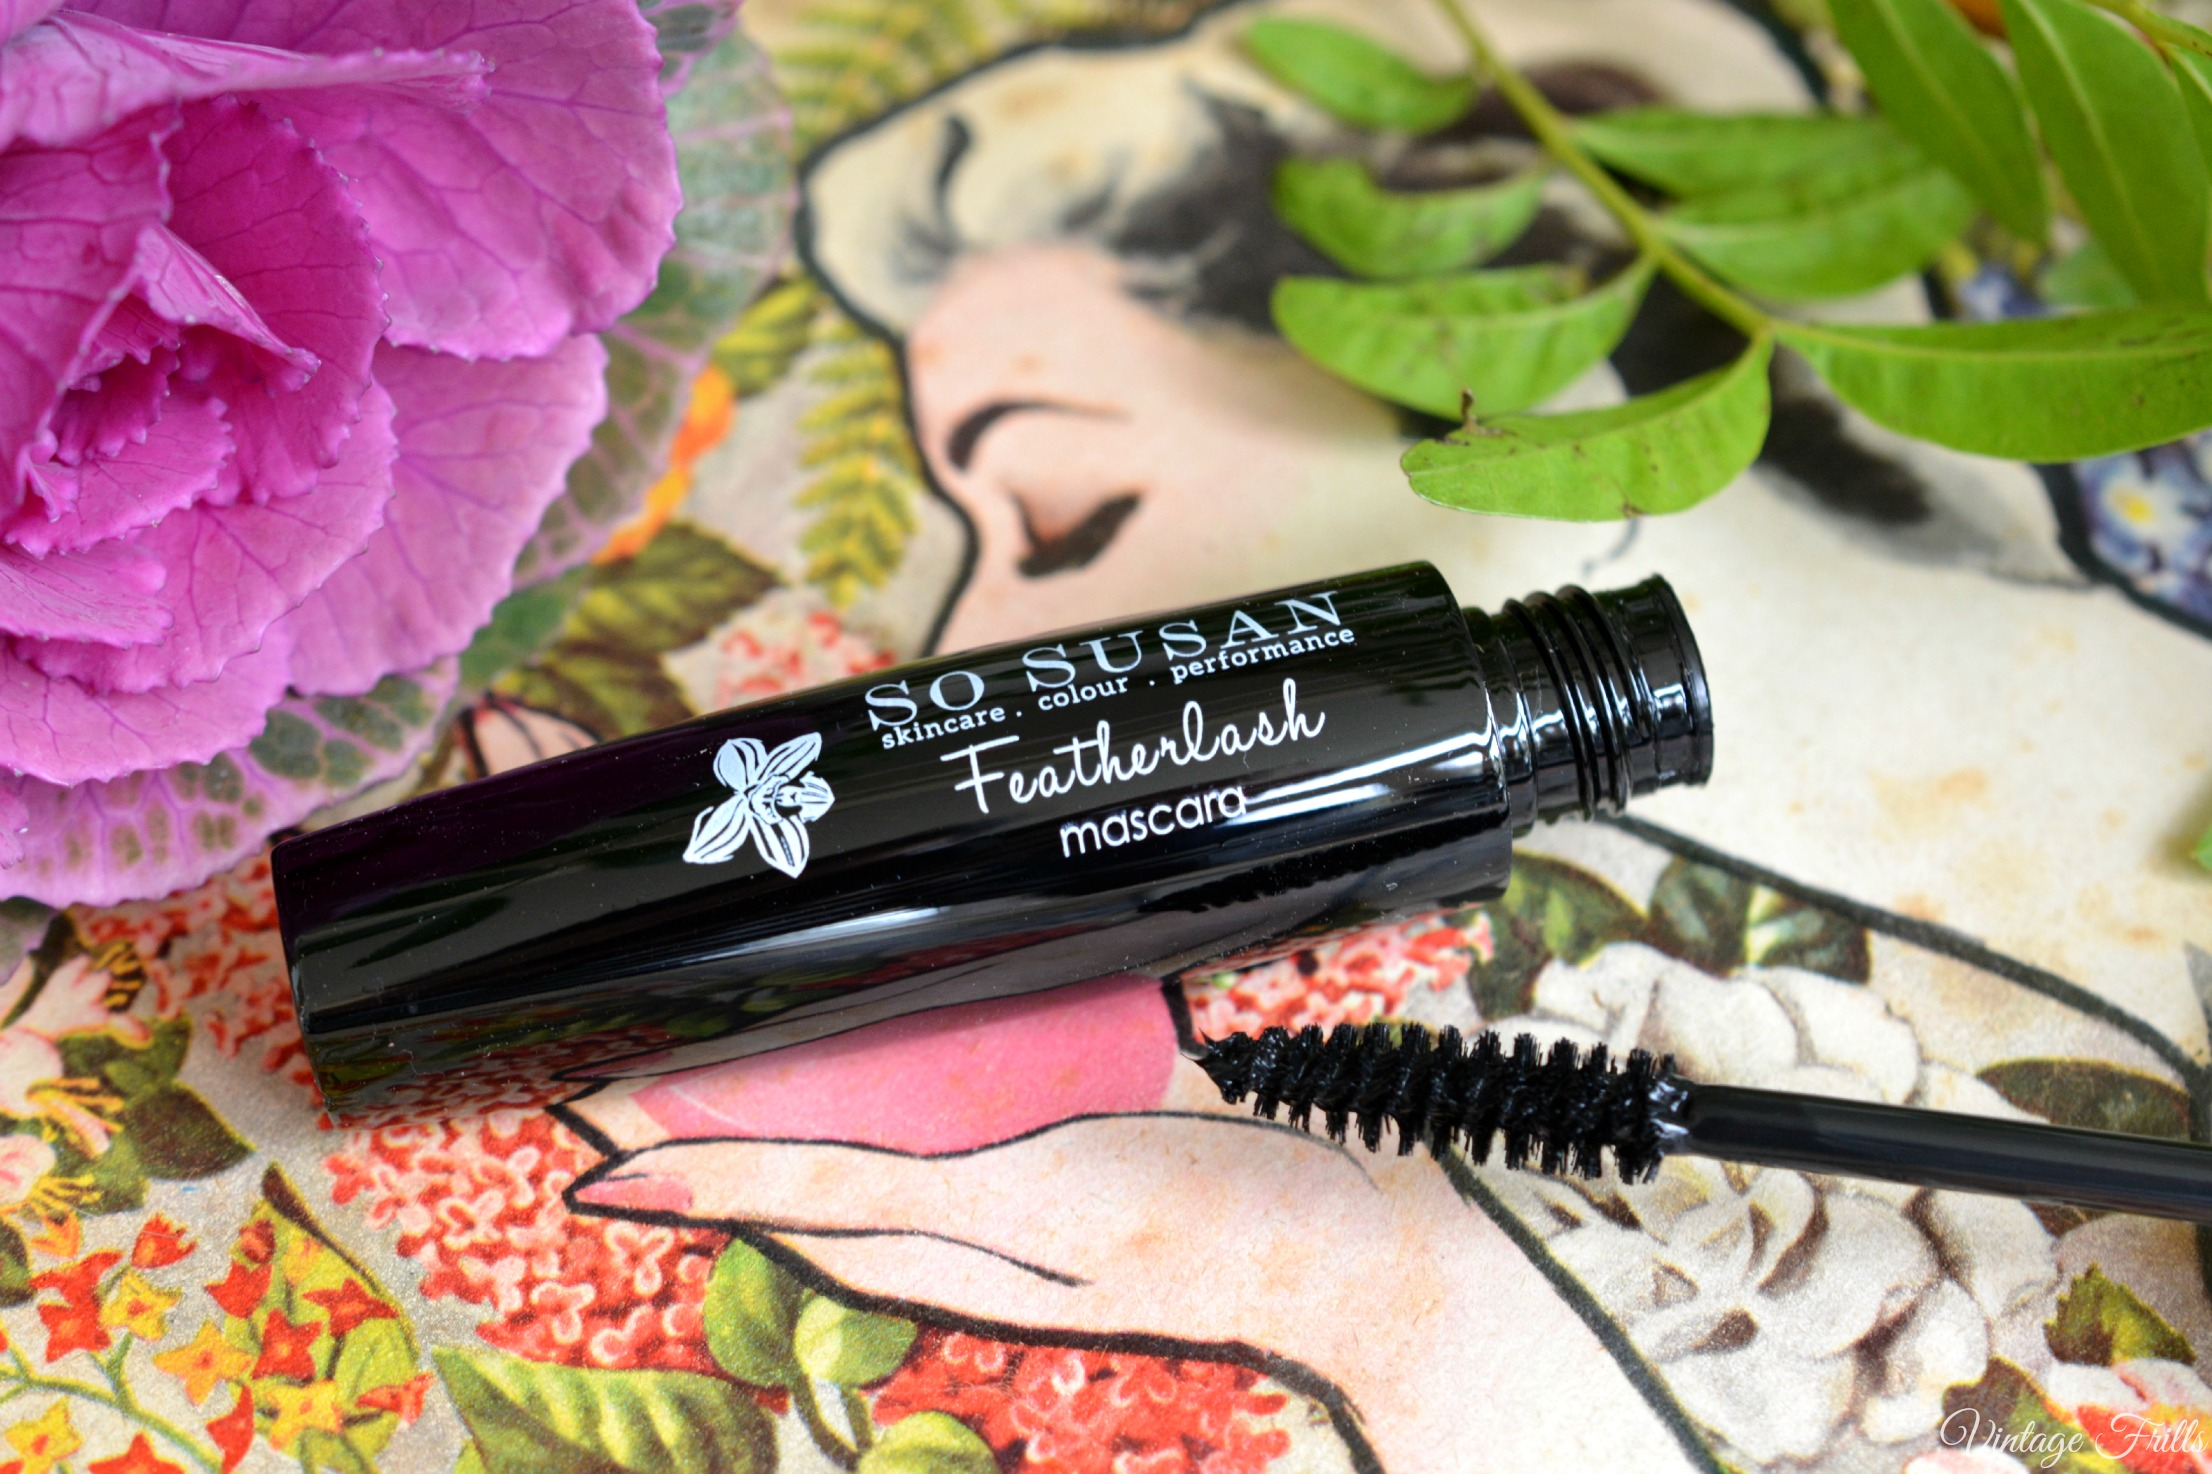 November Birchbox So Susan Featherlash Mascara Review